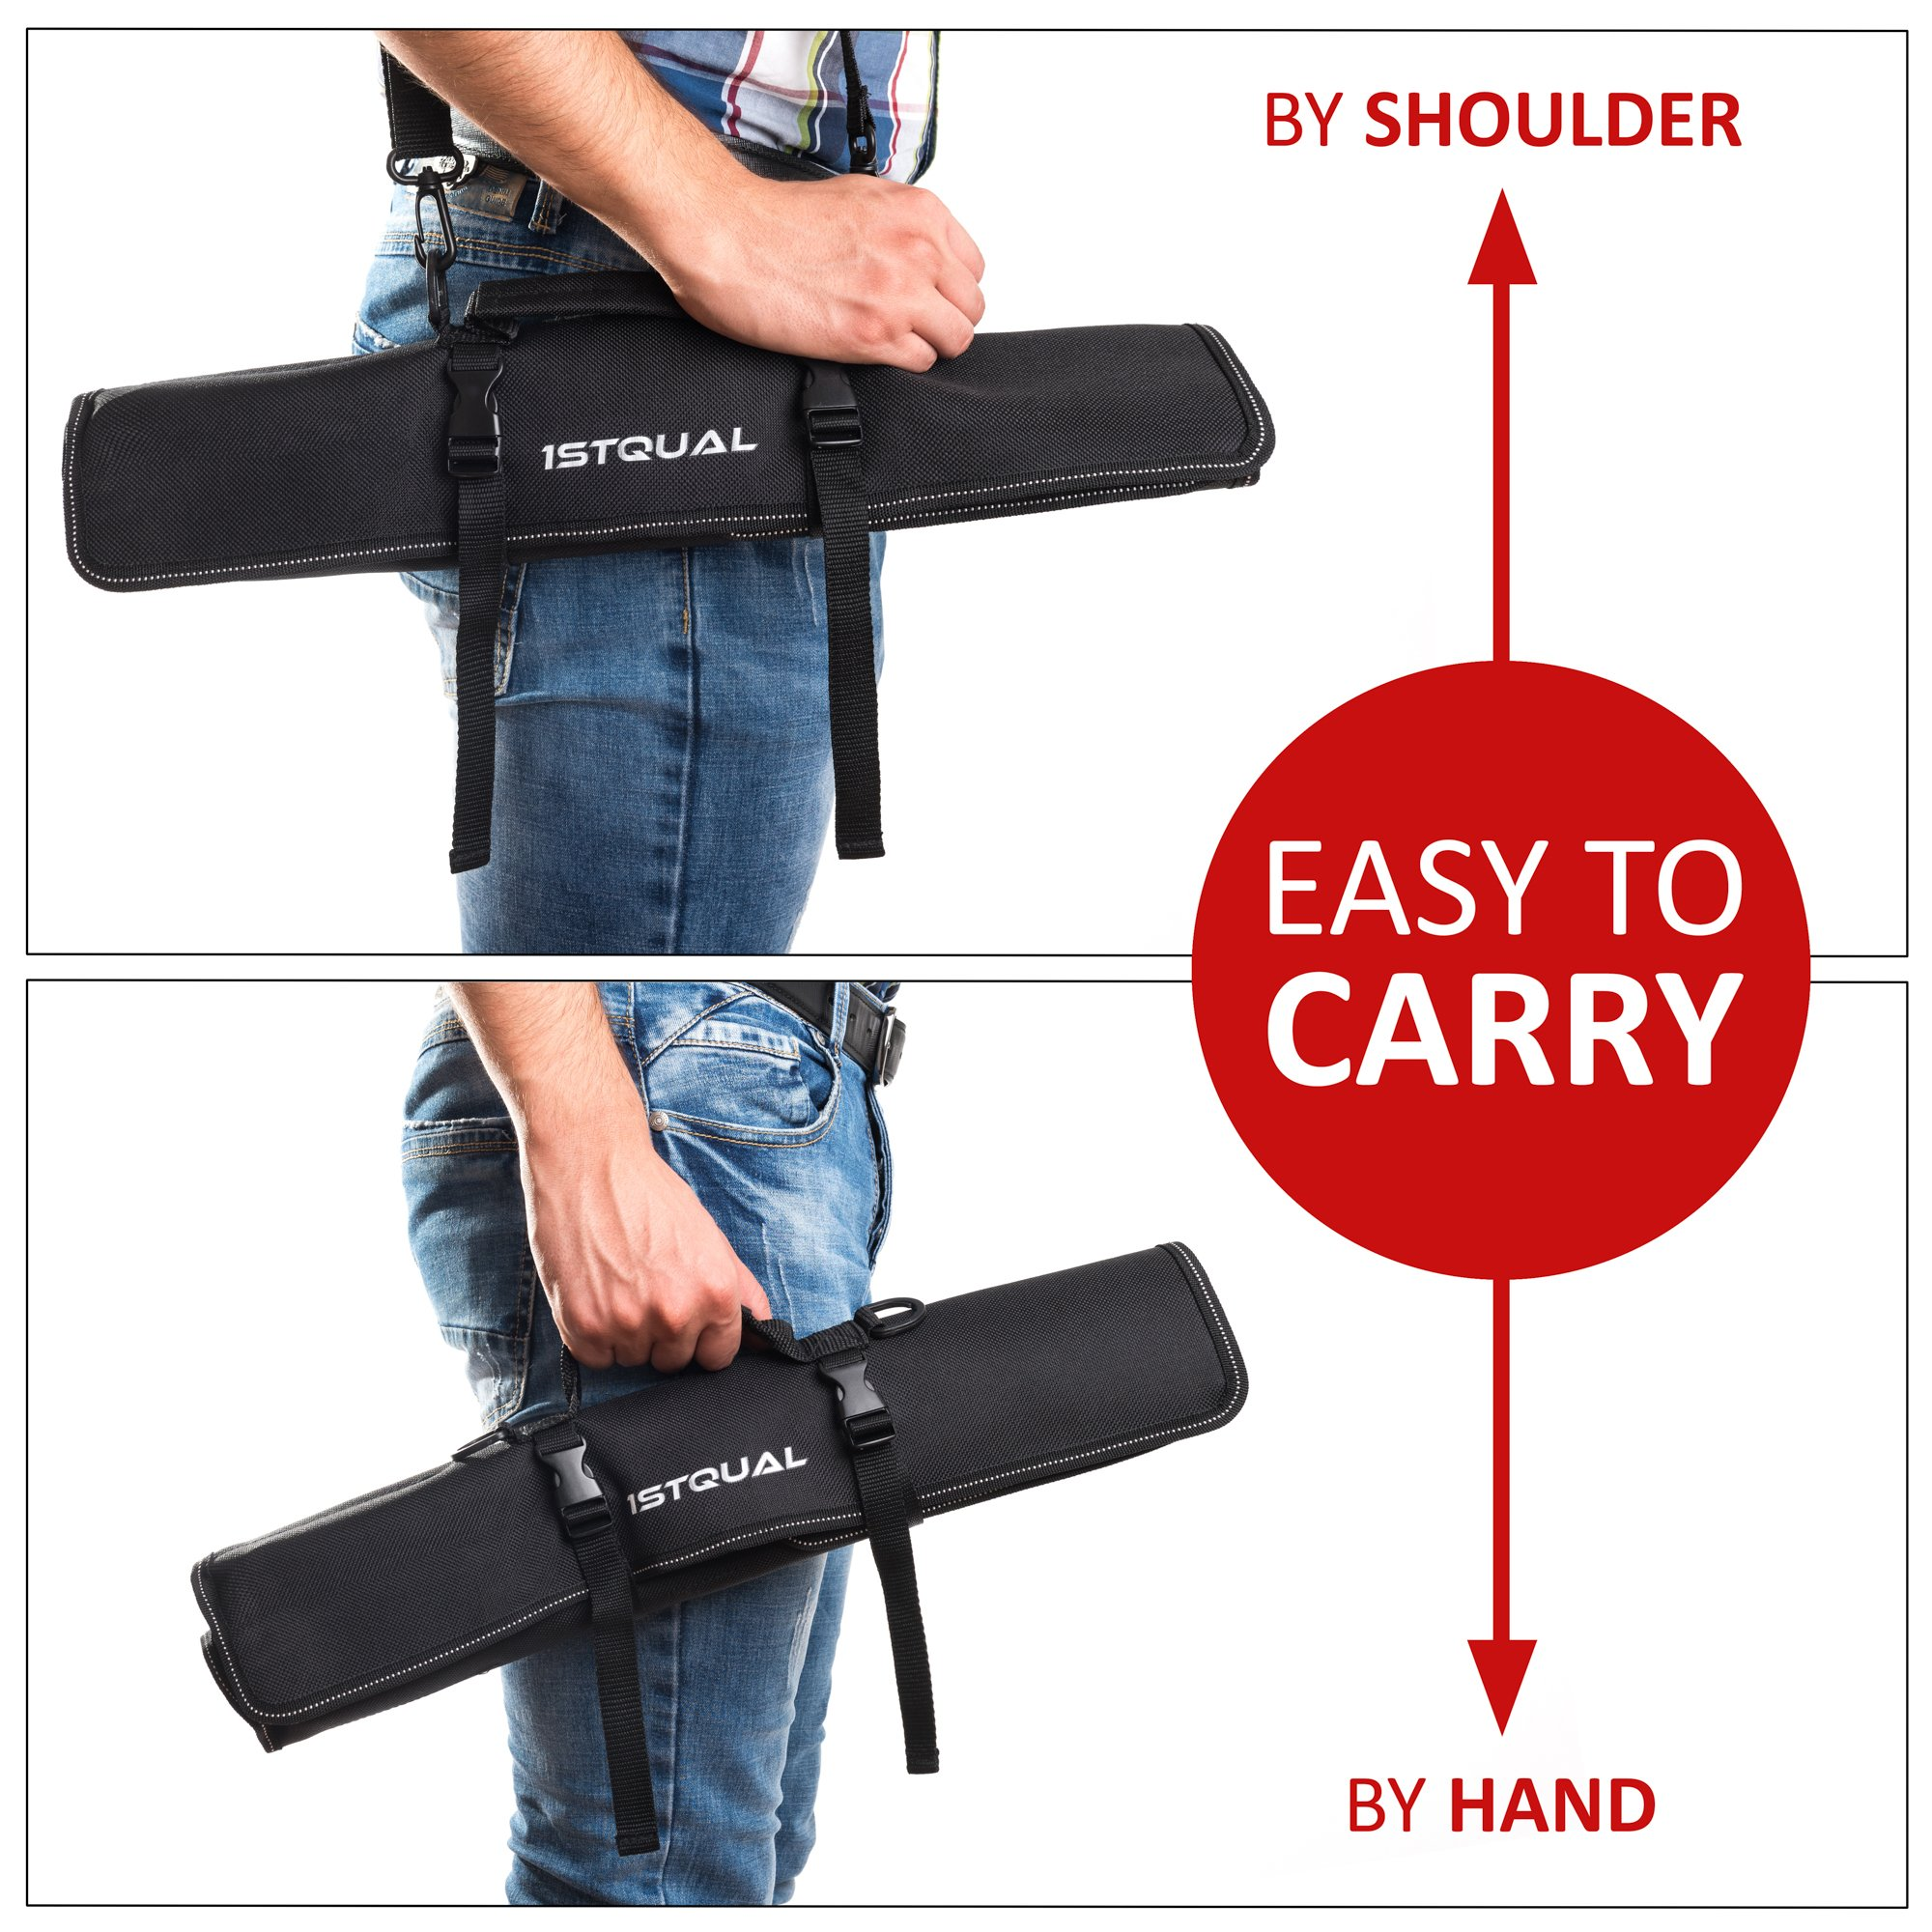 Chef Knife Bag (8 slots) – Durable and Waterproof Culinary Roll Case Utensil With Shoulder Strap and Holder – Knives Organizer For Chefs and Students + eBook Bonus + Extra-Warranty by 1stqual by 1stqual (Image #5)